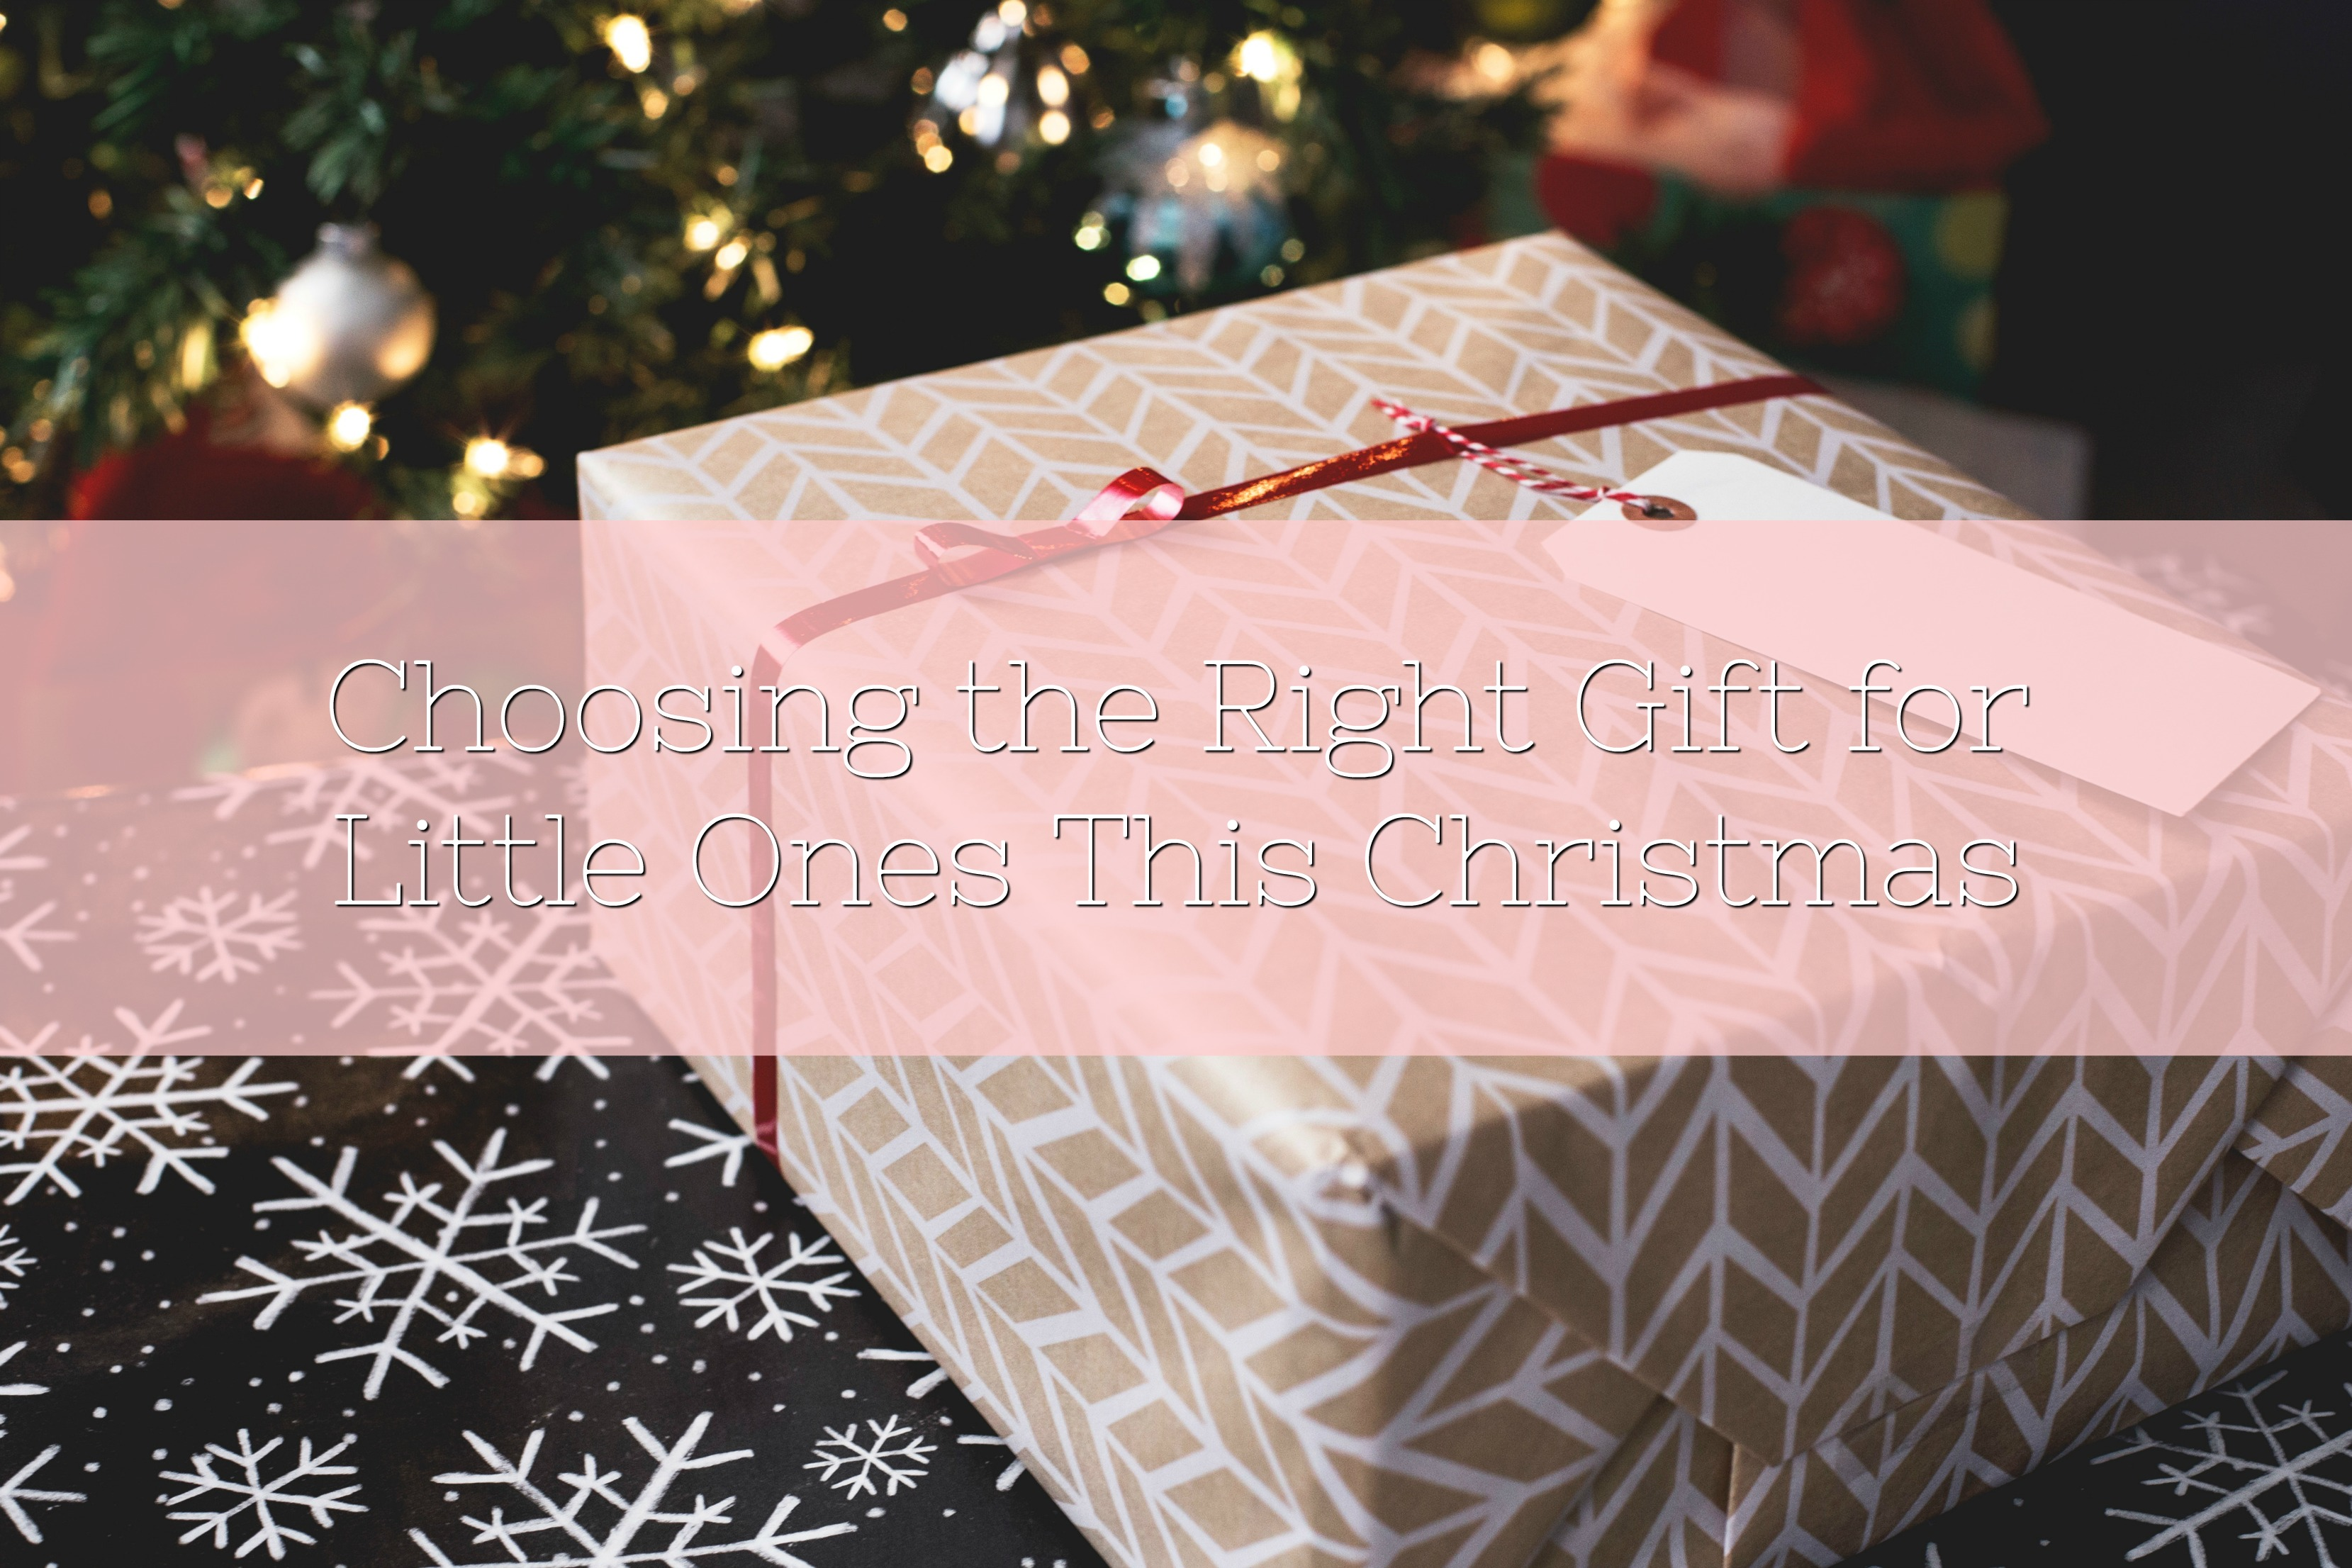 Choosing the Right Gift for Little Ones This Christmas